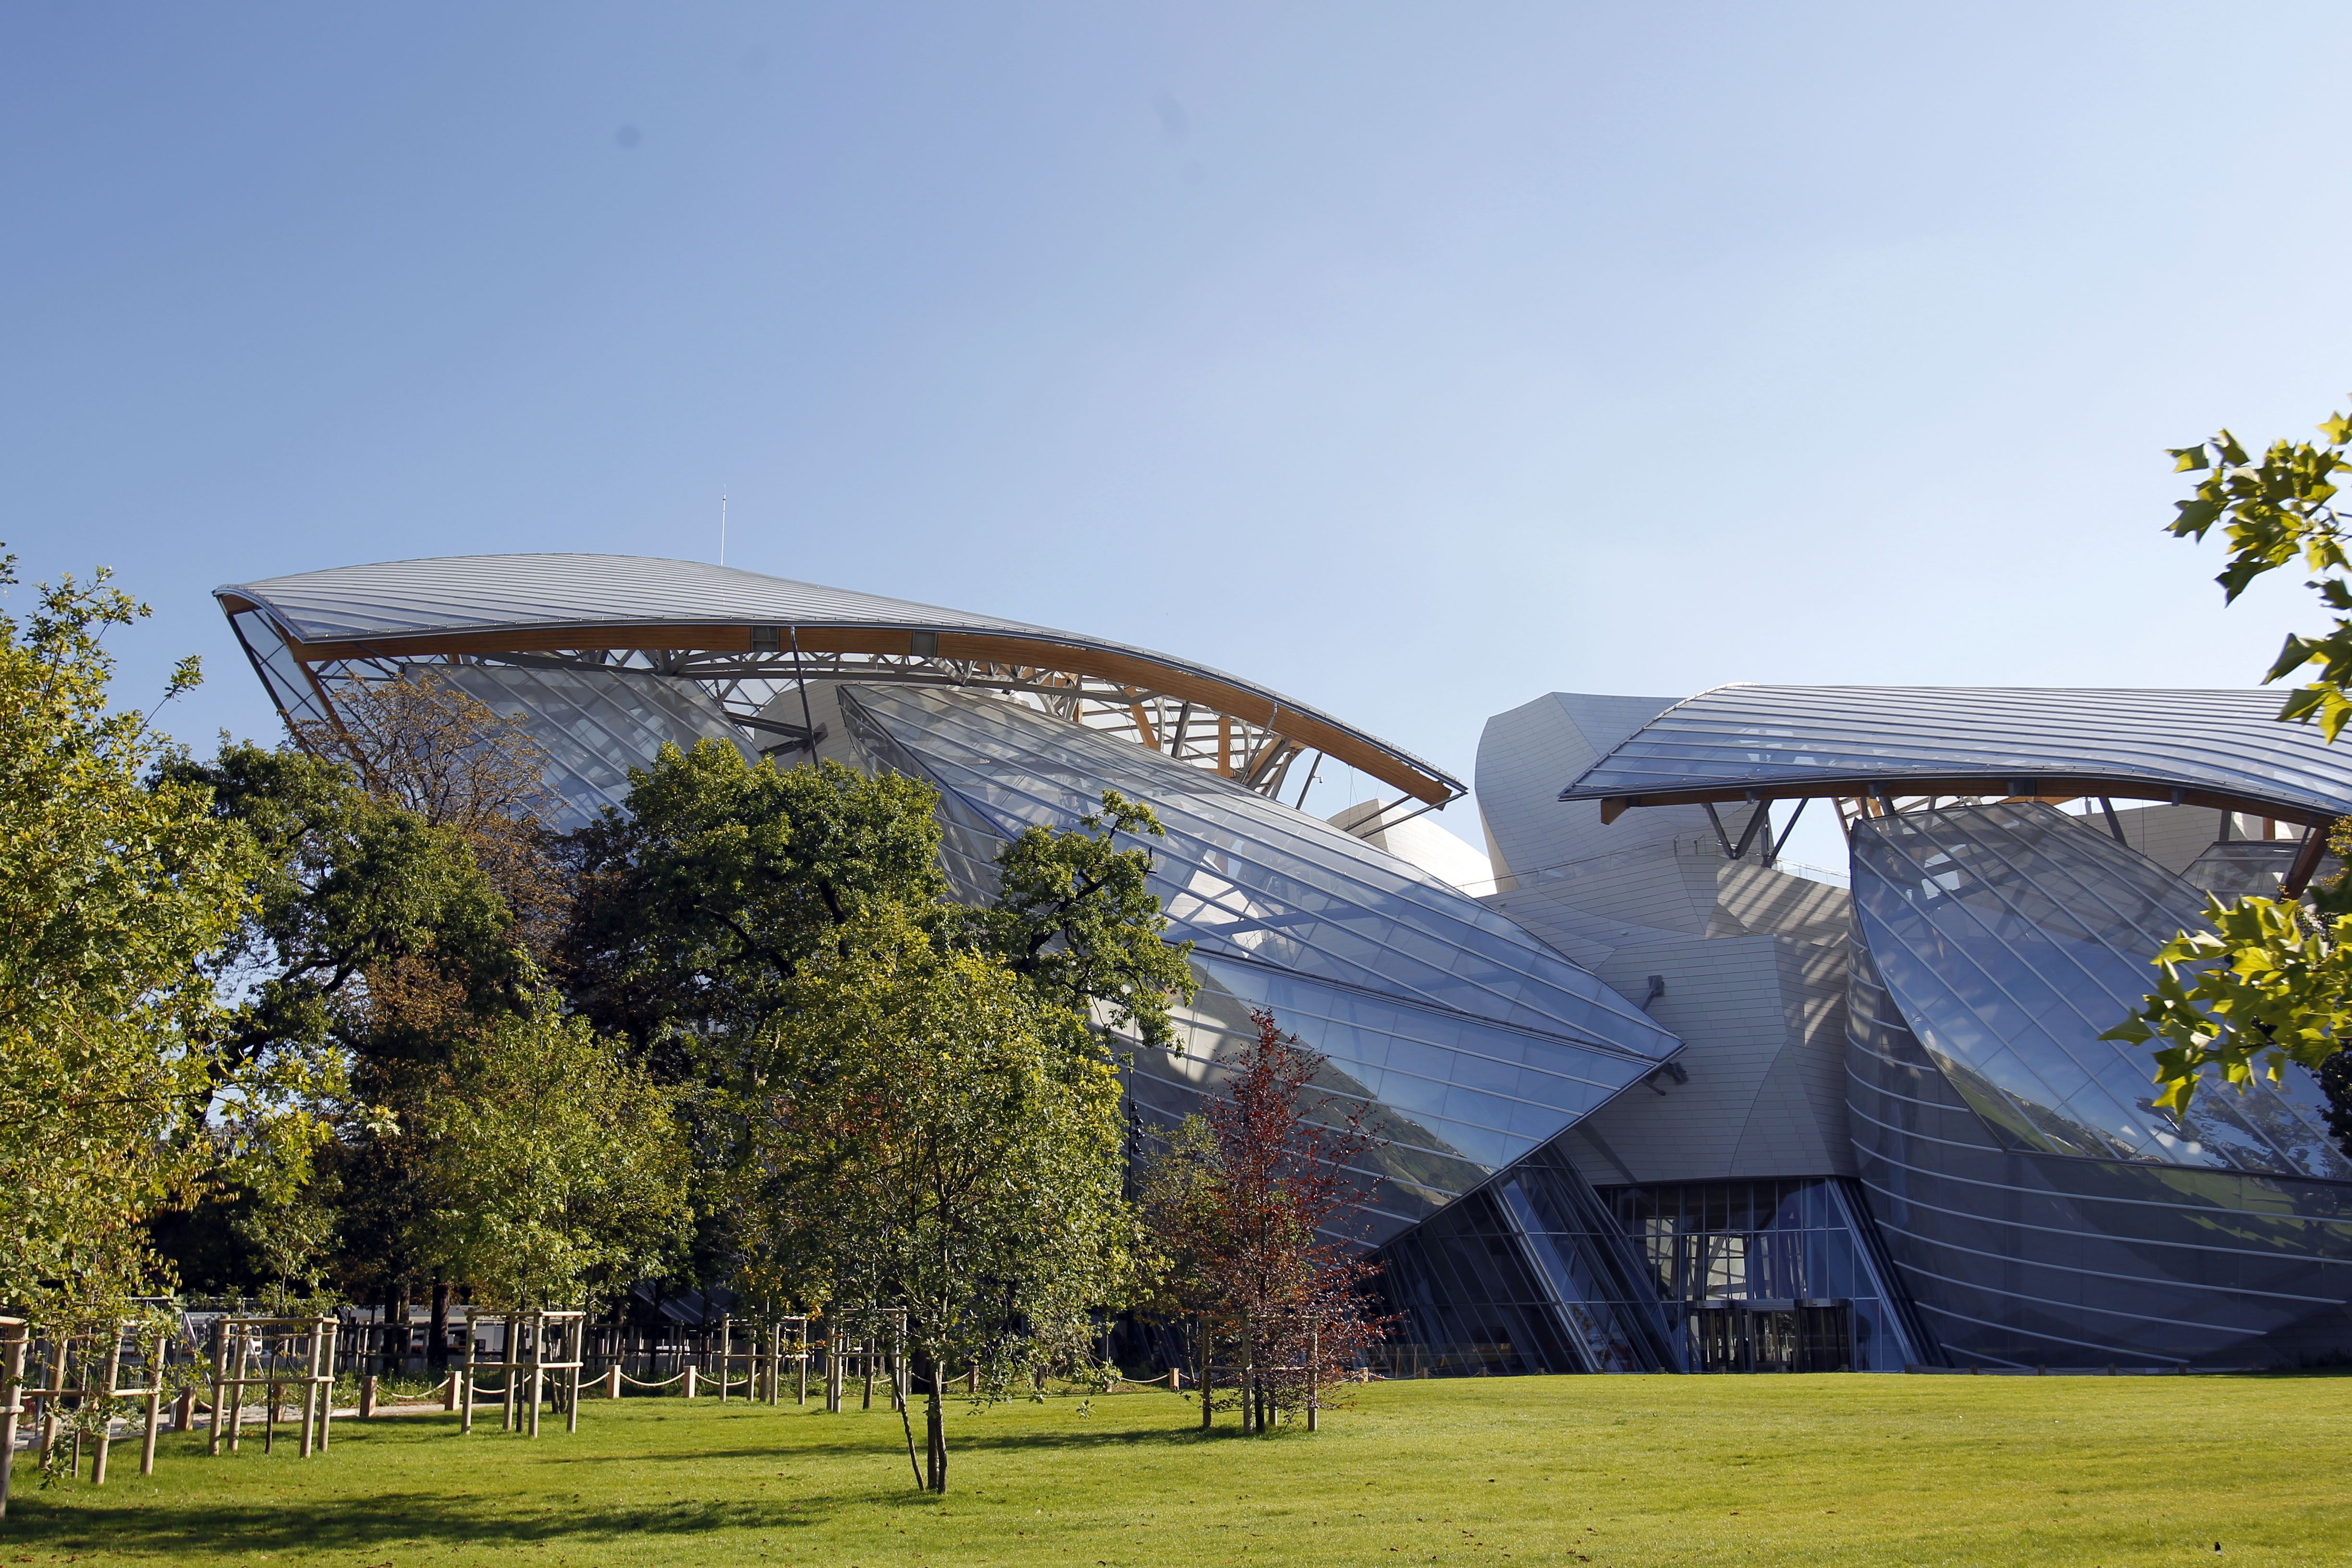 glass sails in sprawling building in a park setting